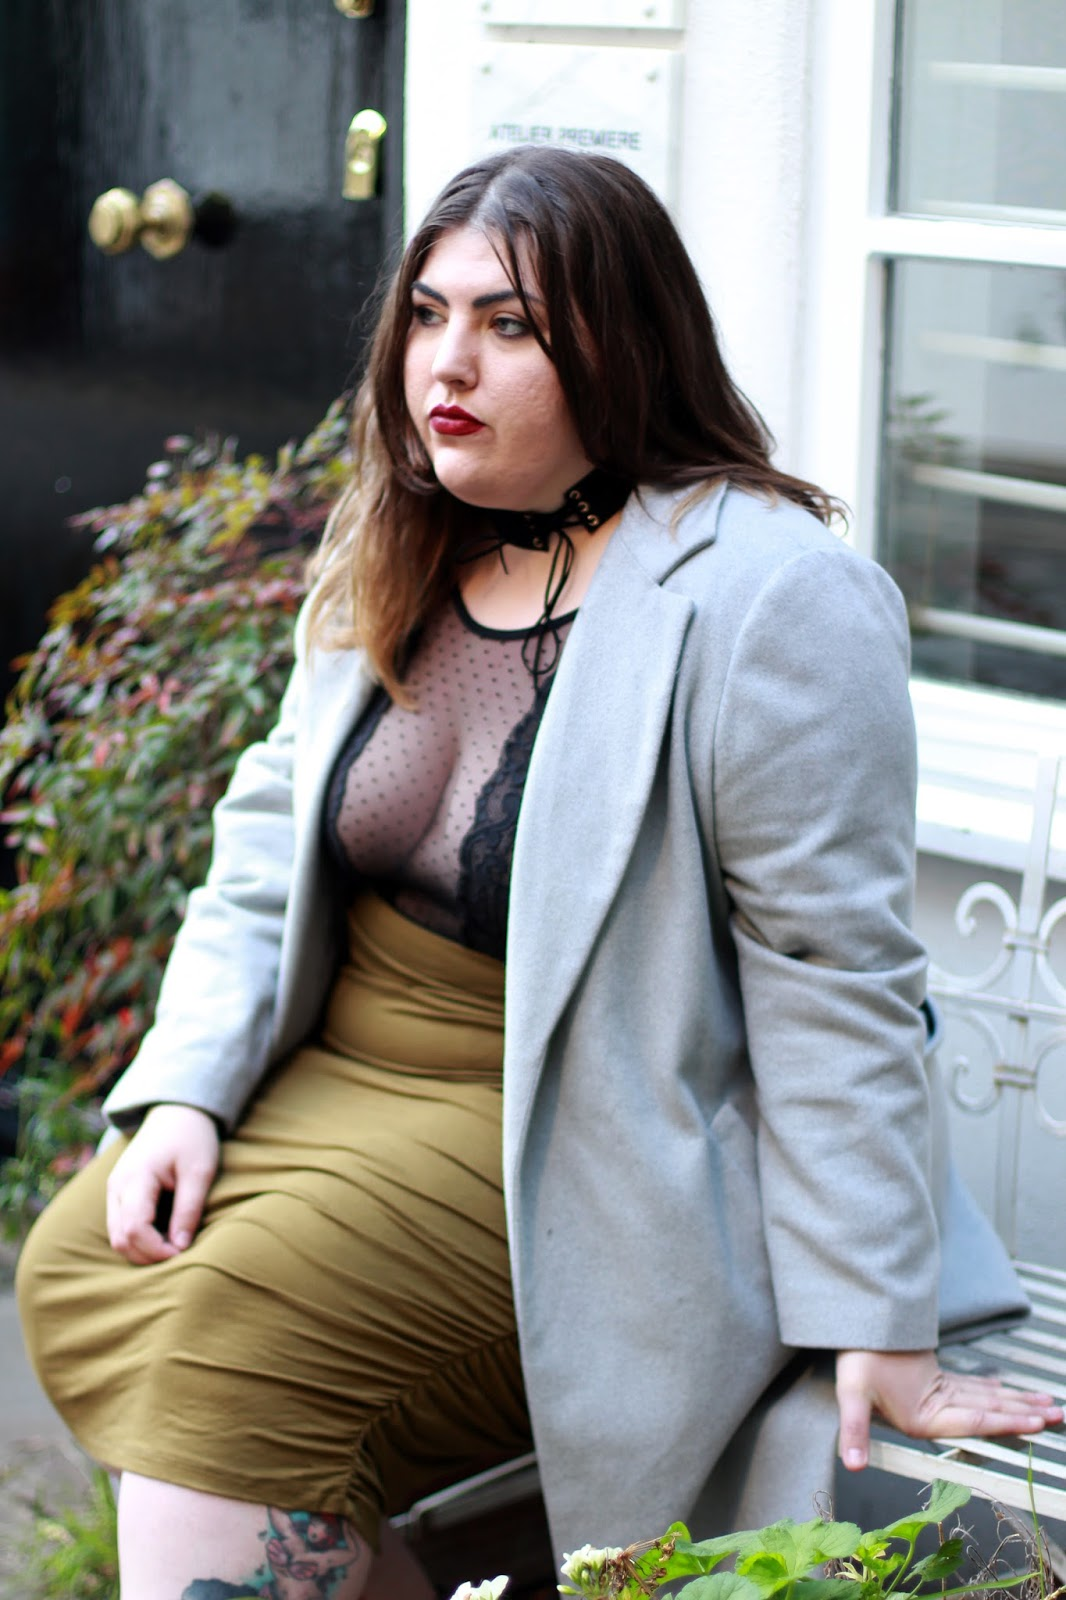 Plus Size Lingerie Body Suit Wear As Clothes - Style Advice